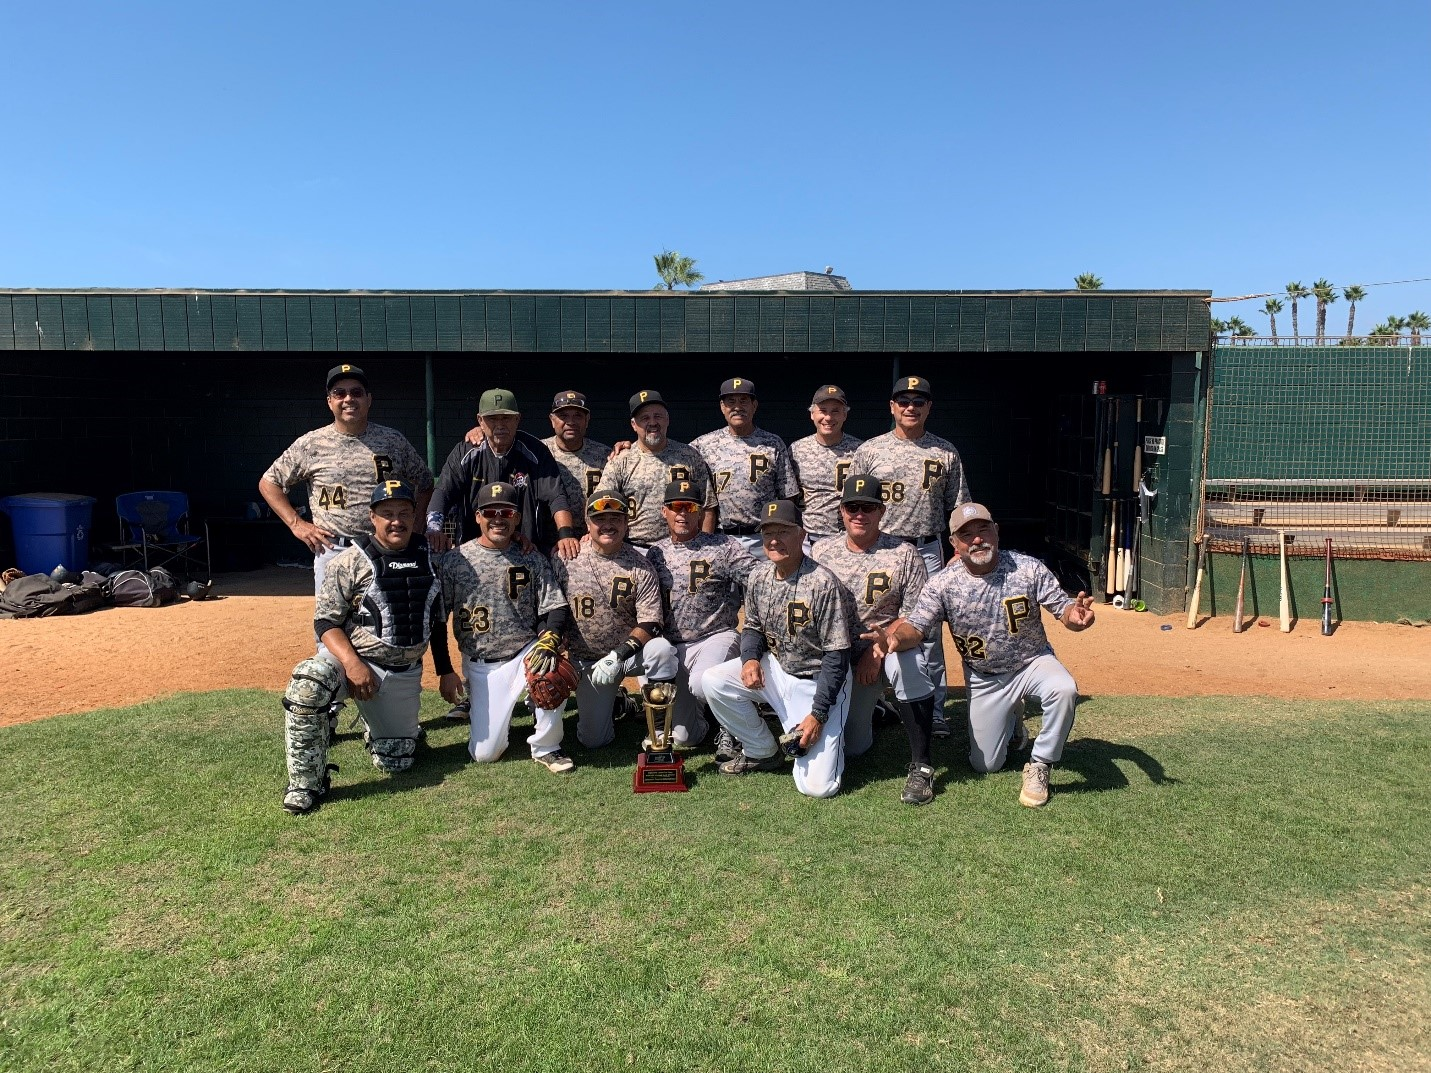 2018 MSBL 53+ SUMMER LEAGUE CHAMPIONS SAN DIEGO PIRATES